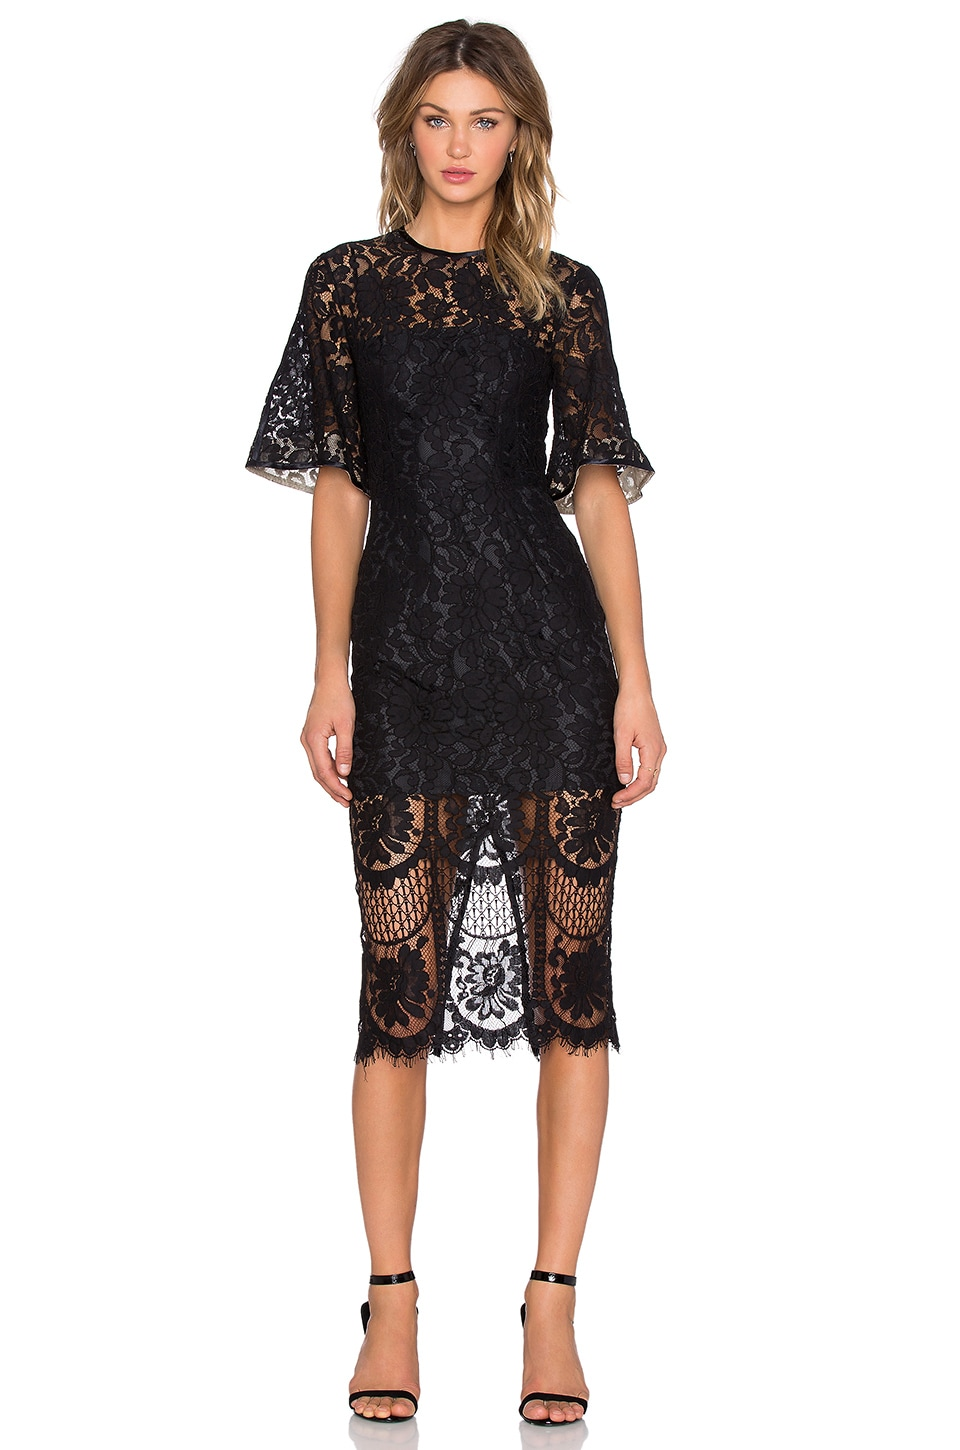 Lover Halo Lace Midi Dress in Black